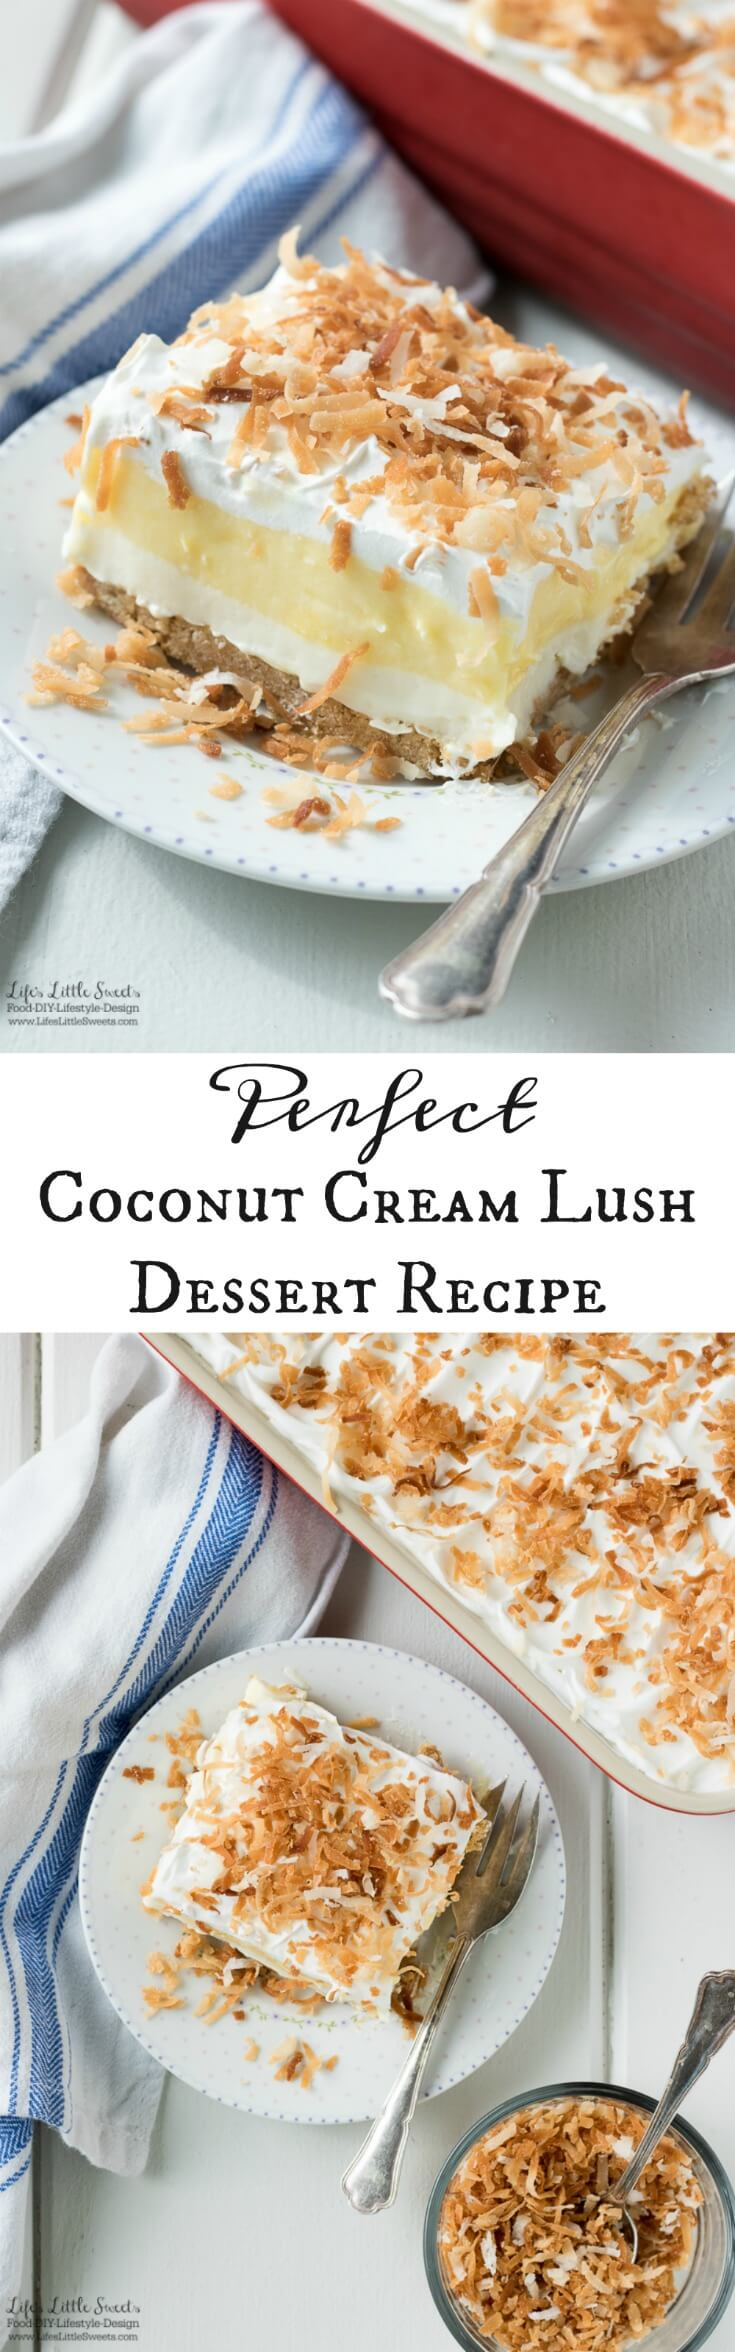 This Perfect Coconut Cream Lush Dessert Recipe recipe is light, creamy and filled with coconut deliciousness. It's a one-pan dessert that feeds a crowd and even has a no-bake crust option for those hot weather days. www.LifesLittleSweets.com